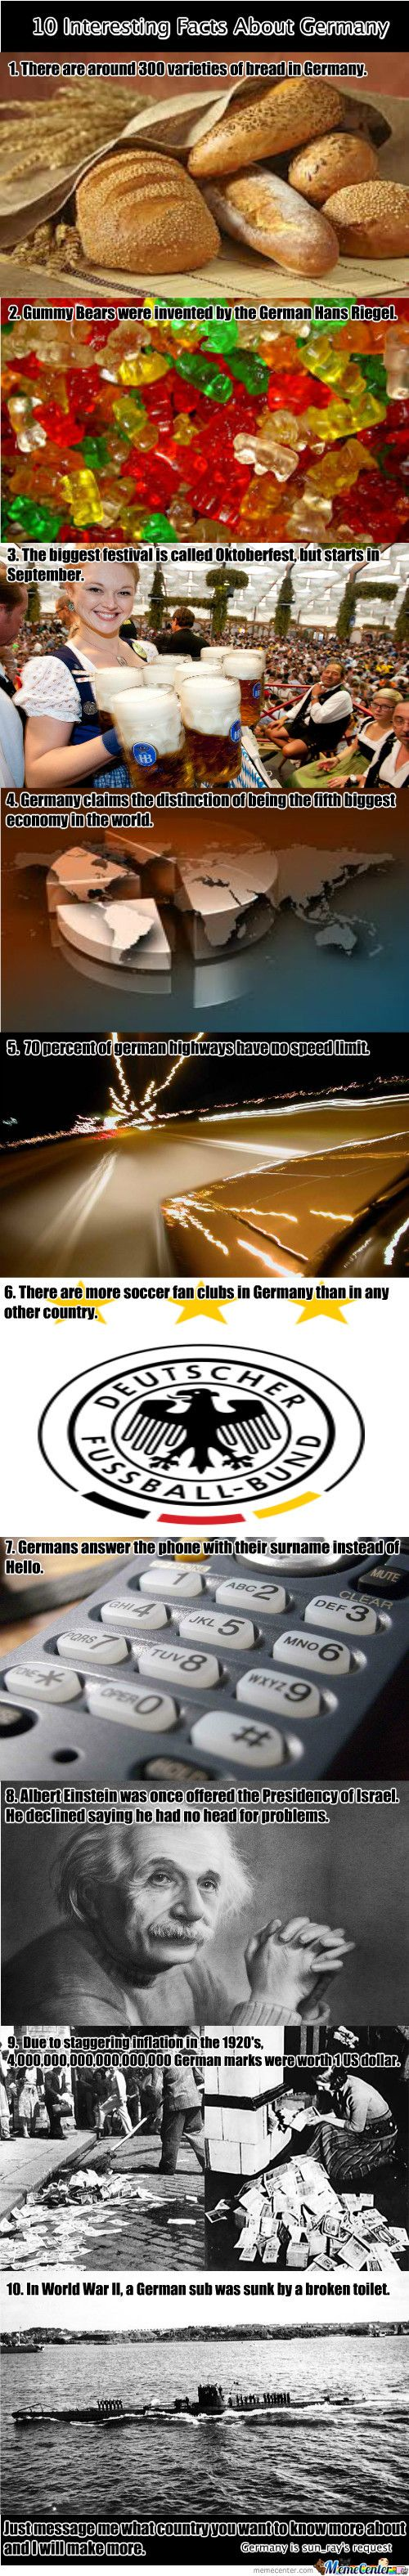 Intersting facts about Germany